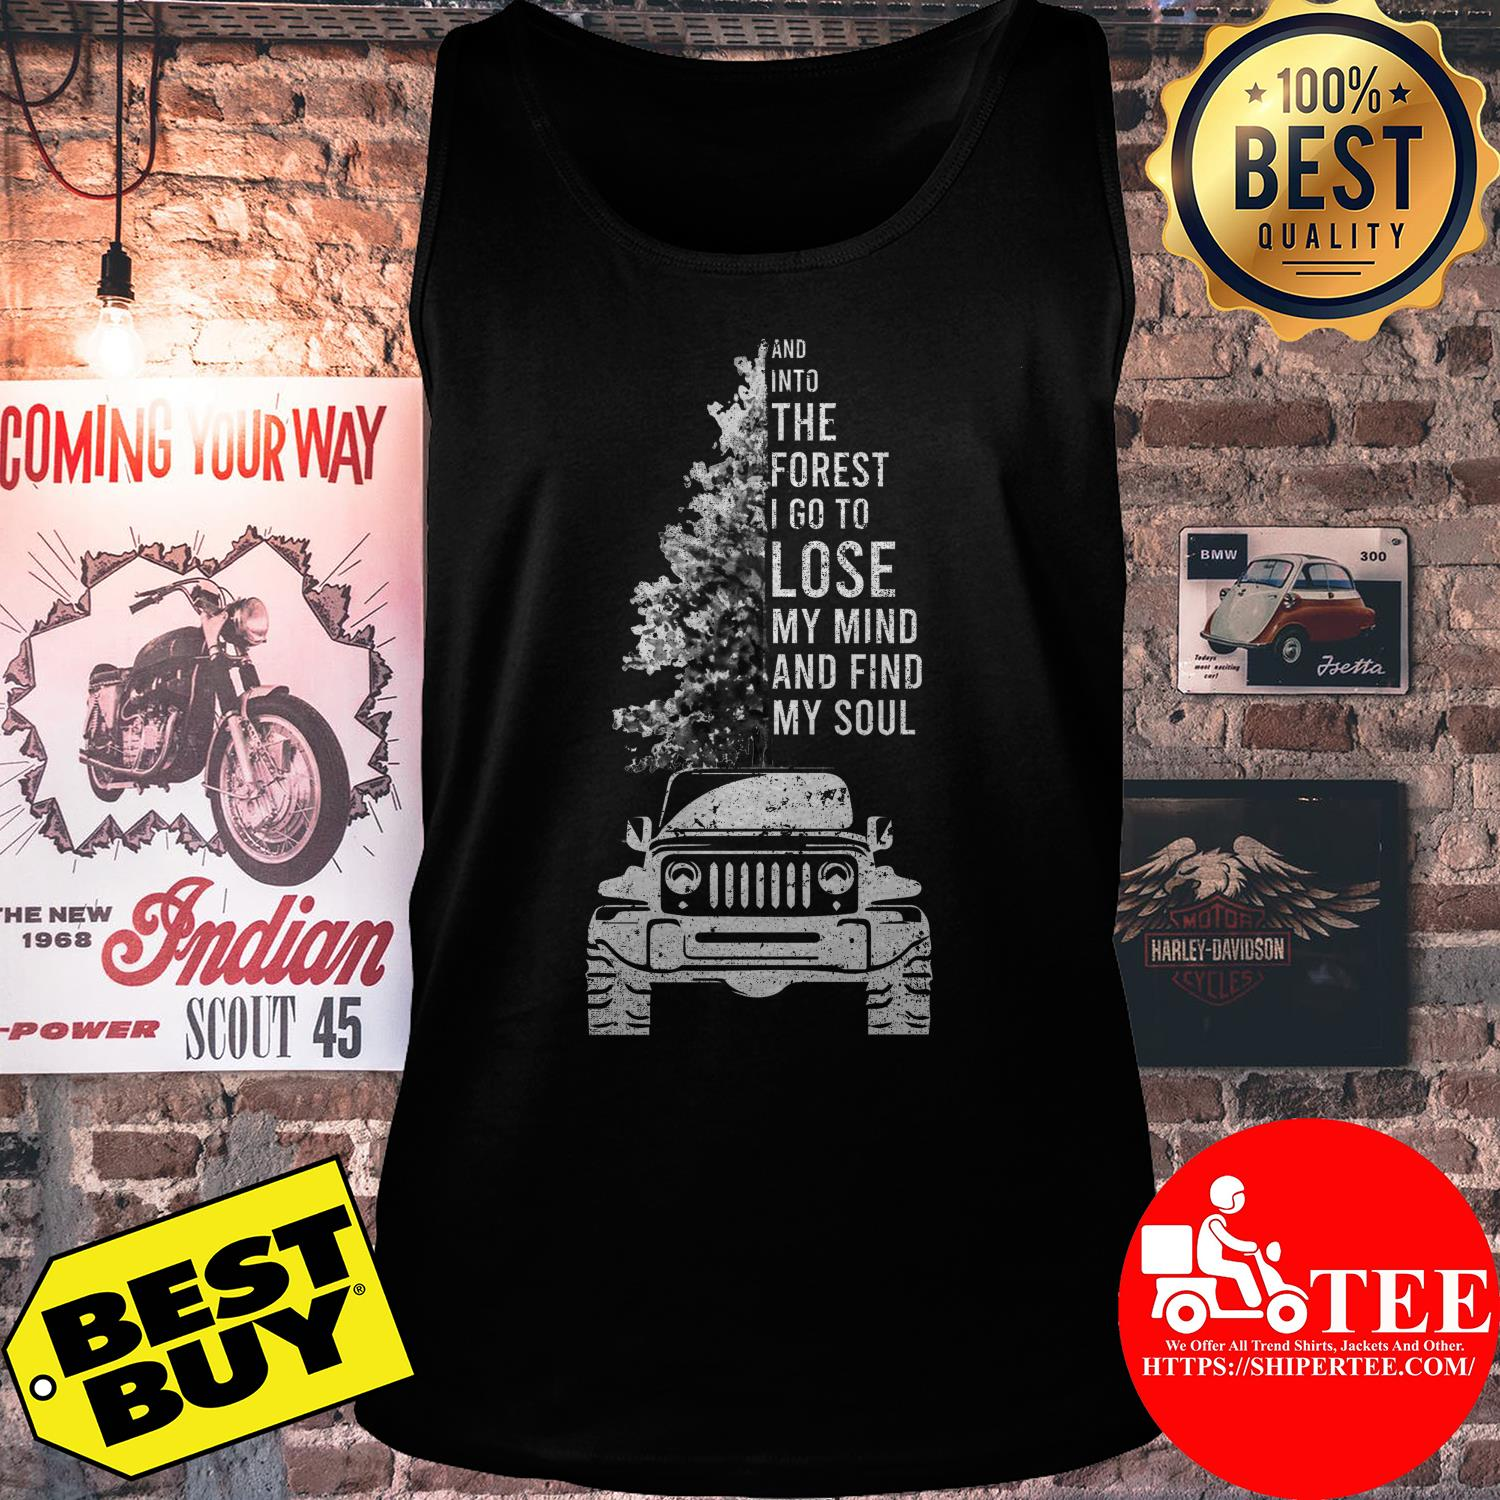 Trees and into the forest I go to lose my mind and find my soul tank top